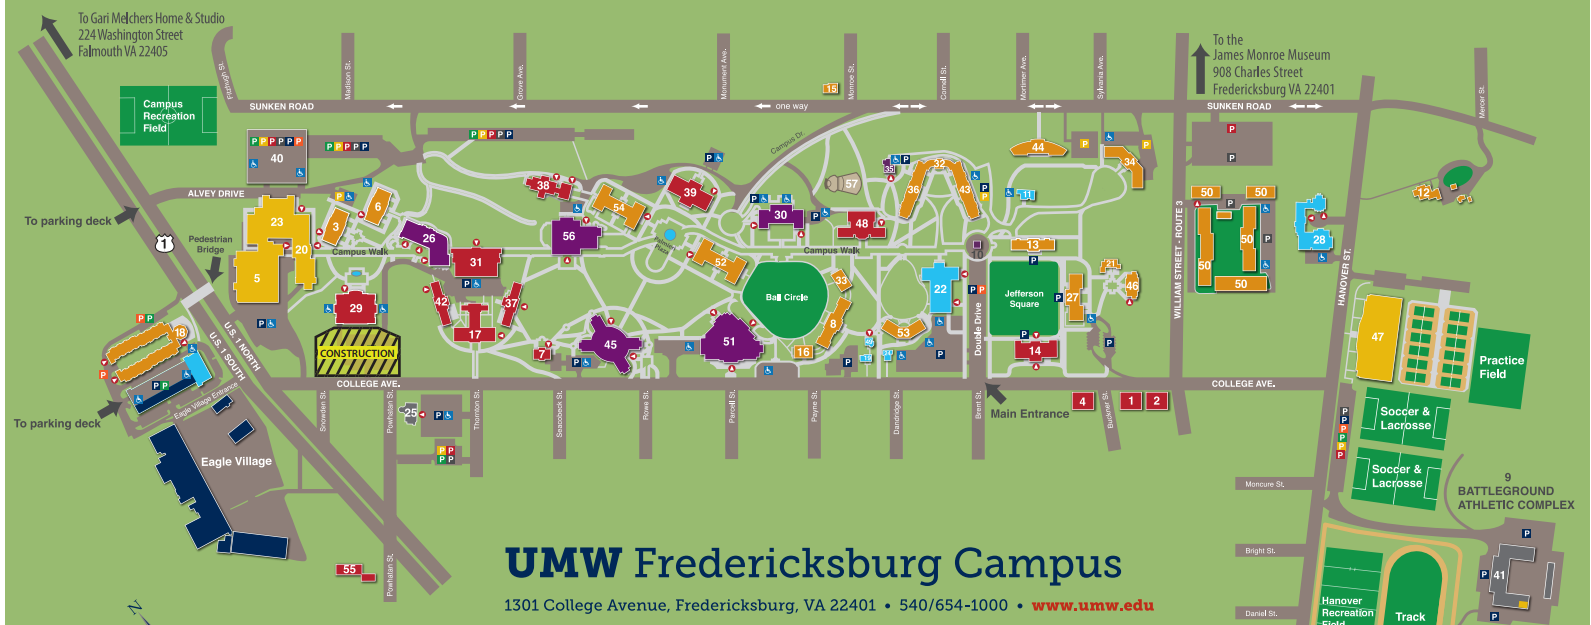 Umw Campus Map Mary Washington Campus Map | autobedrijfmaatje